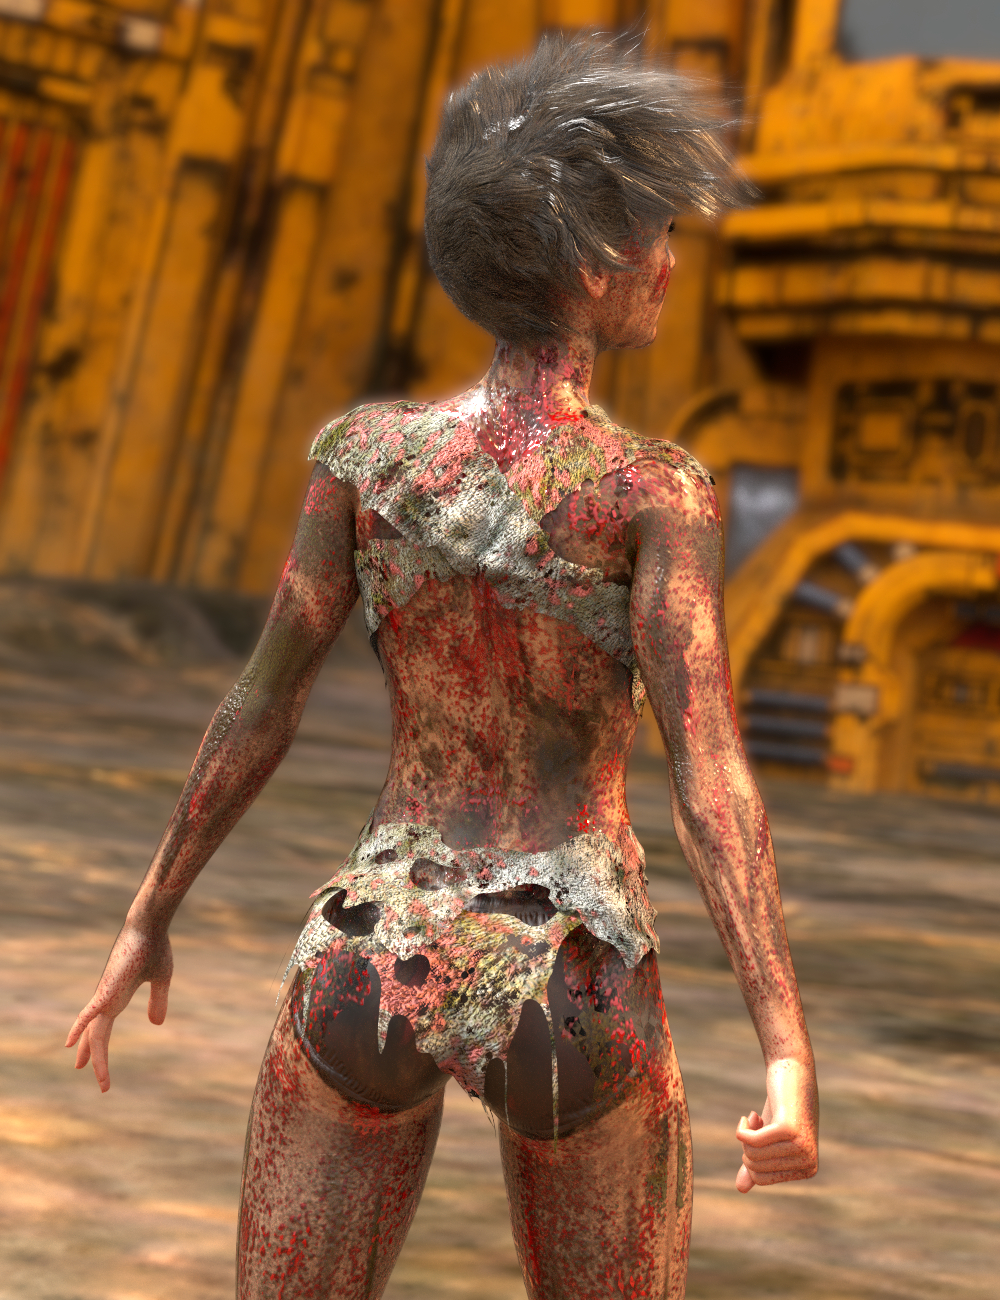 SY A Big Mess for Genesis 8 by: Sickleyield, 3D Models by Daz 3D